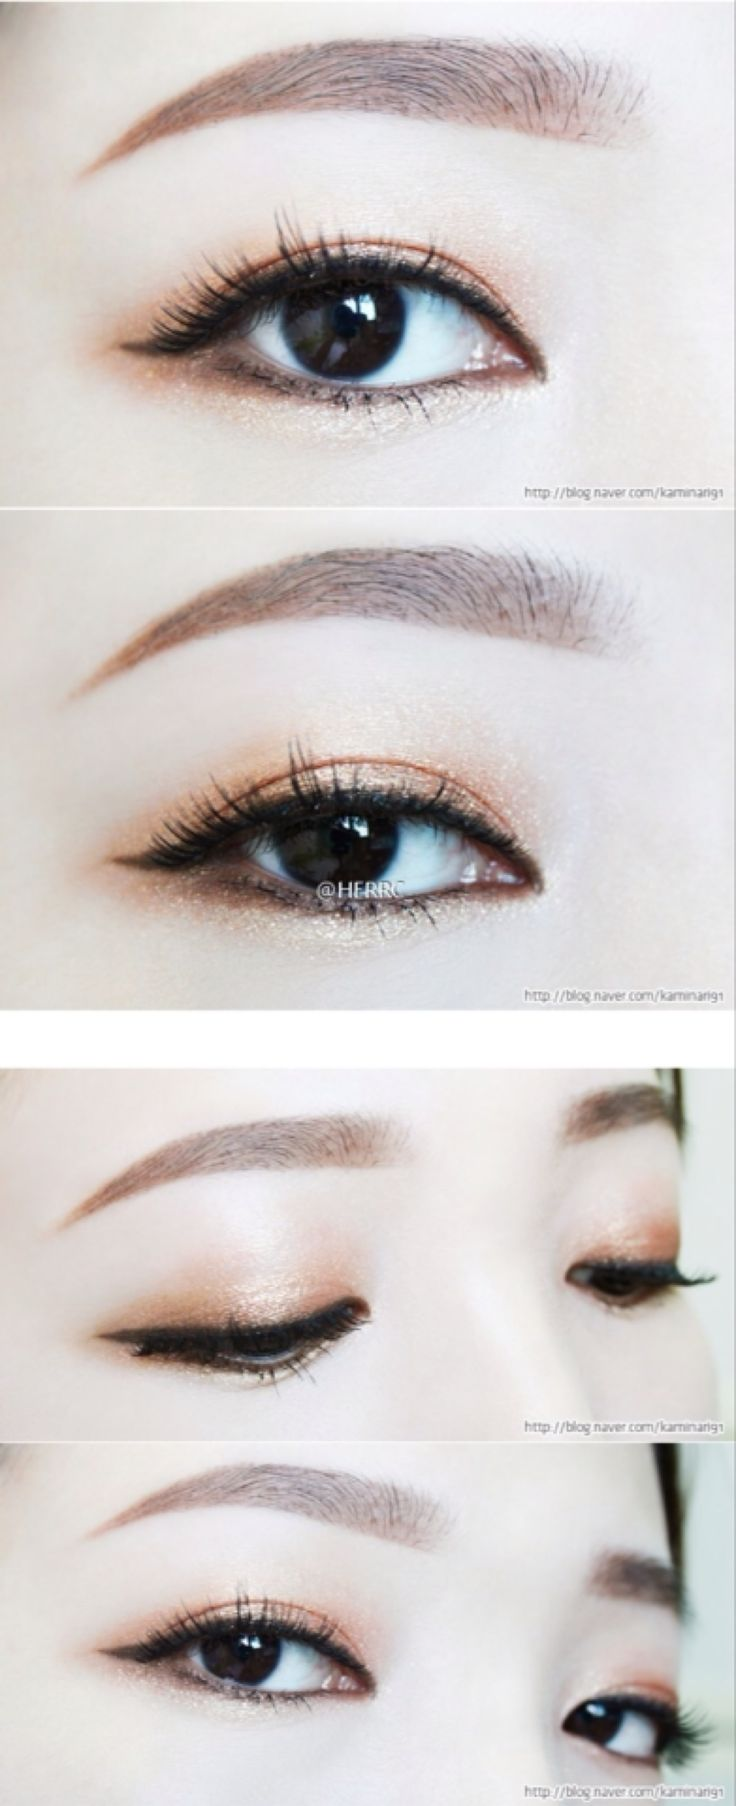 http://www.duitang.com/people/mblog/176648315/detail/ Korean make up is on point guys